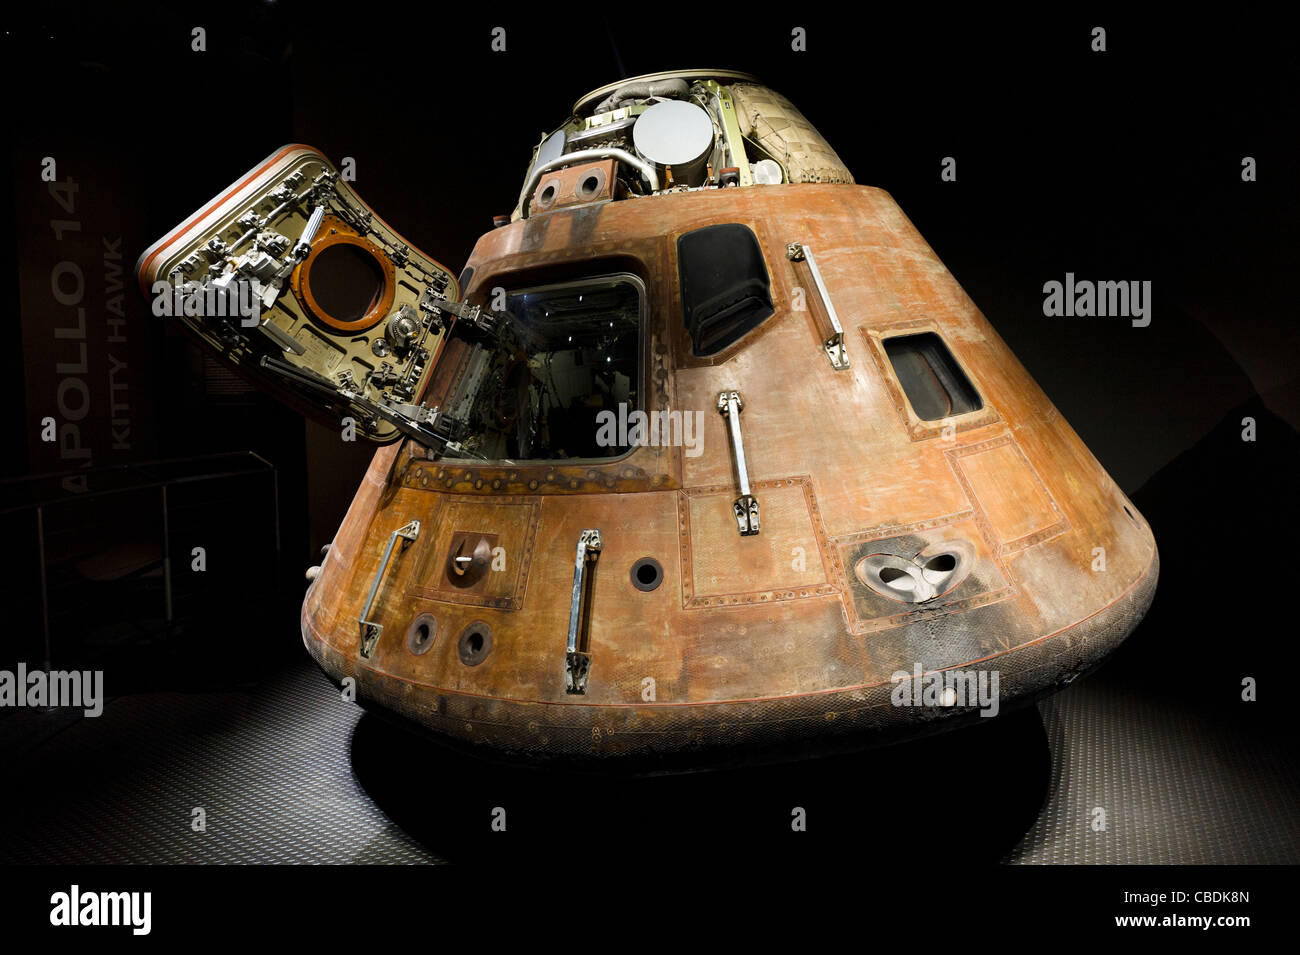 The Command Module from the Apollo 15 moon mission, Saturn V complex, Kennedy Space Center, Merritt Island, Florida, - Stock Image